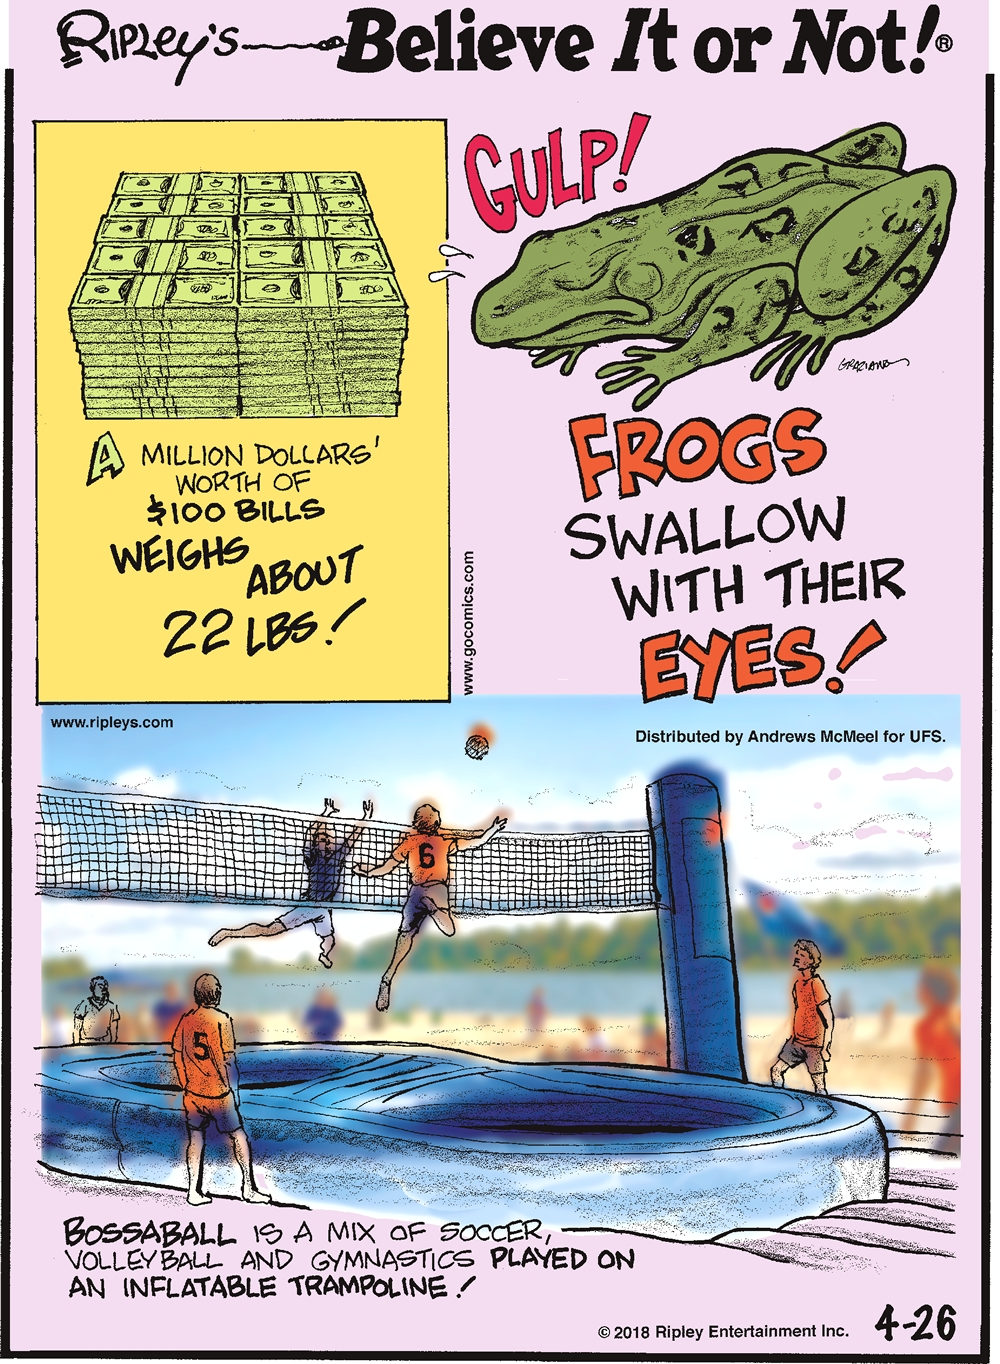 A million dollars' worth of $100 bills weighs about 22 lbs!-------------------- Frogs swallow with their eyes!-------------------- Bossaball is a mix of soccer, volleyball, and gymnastics played on an inflatable trampoline!